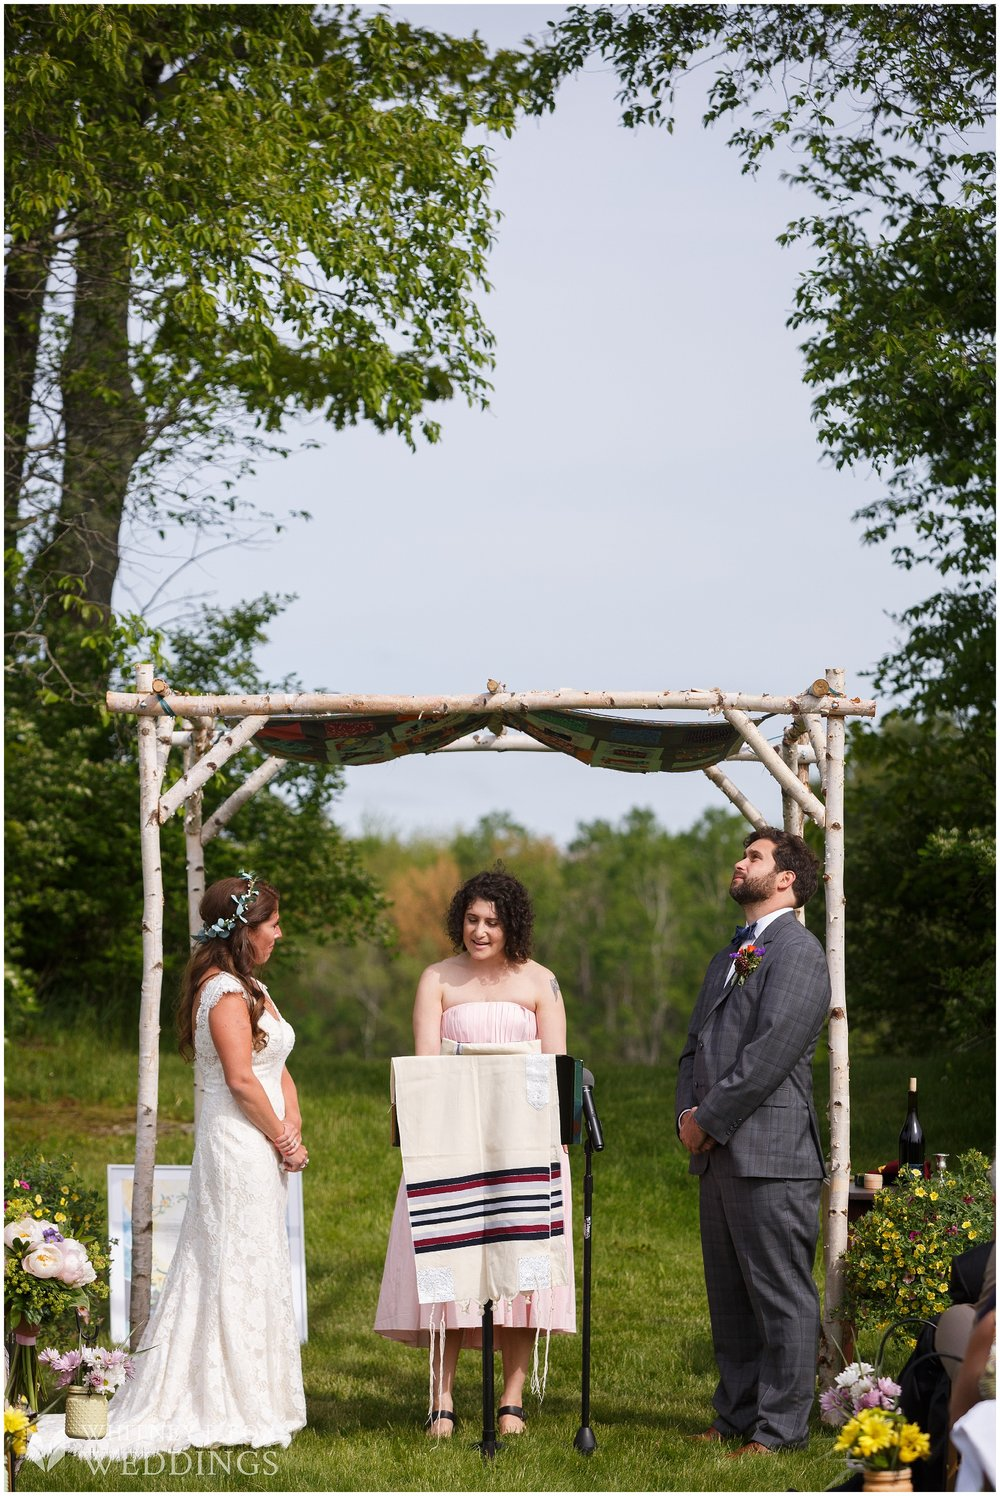 36_66_tai_josh_the_homestead_rest_be_thankful_farm_lyman_maine_photographer_whitney_j_fox_weddings_1354.jpg